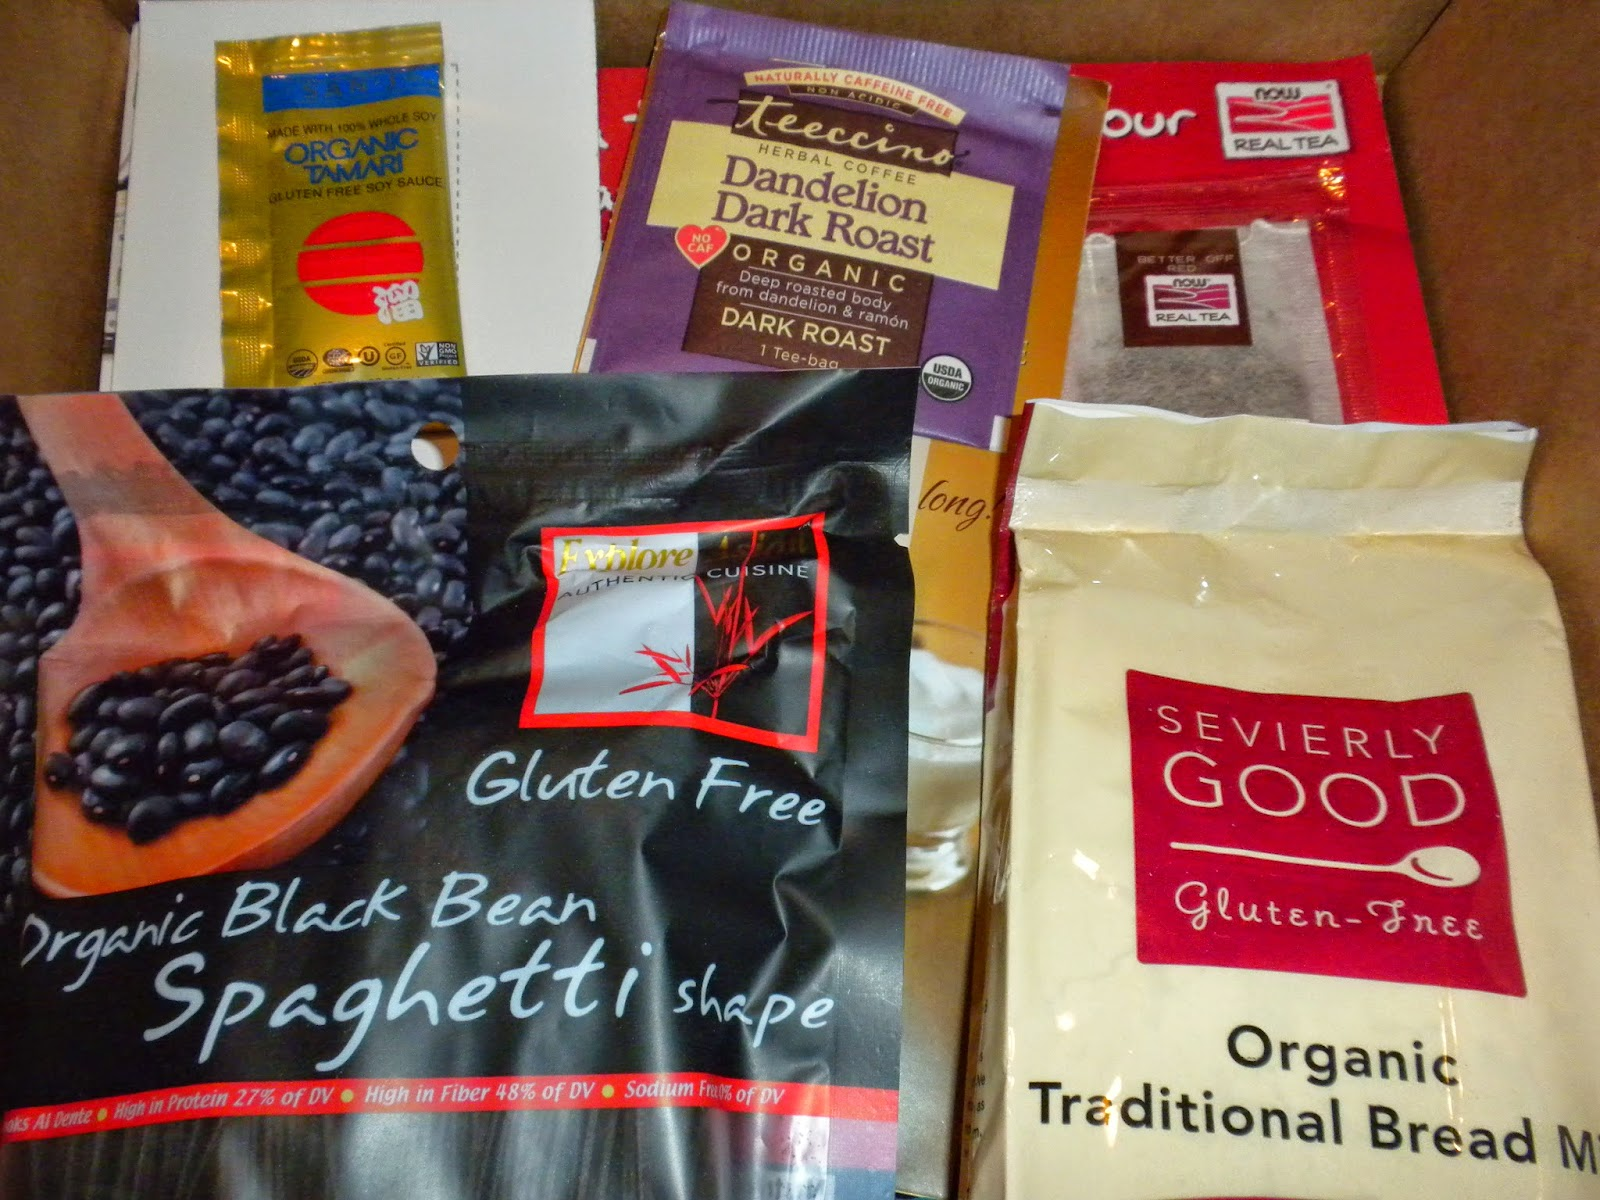 Close up of some items in the August 2014 Send Me Gluten Free box